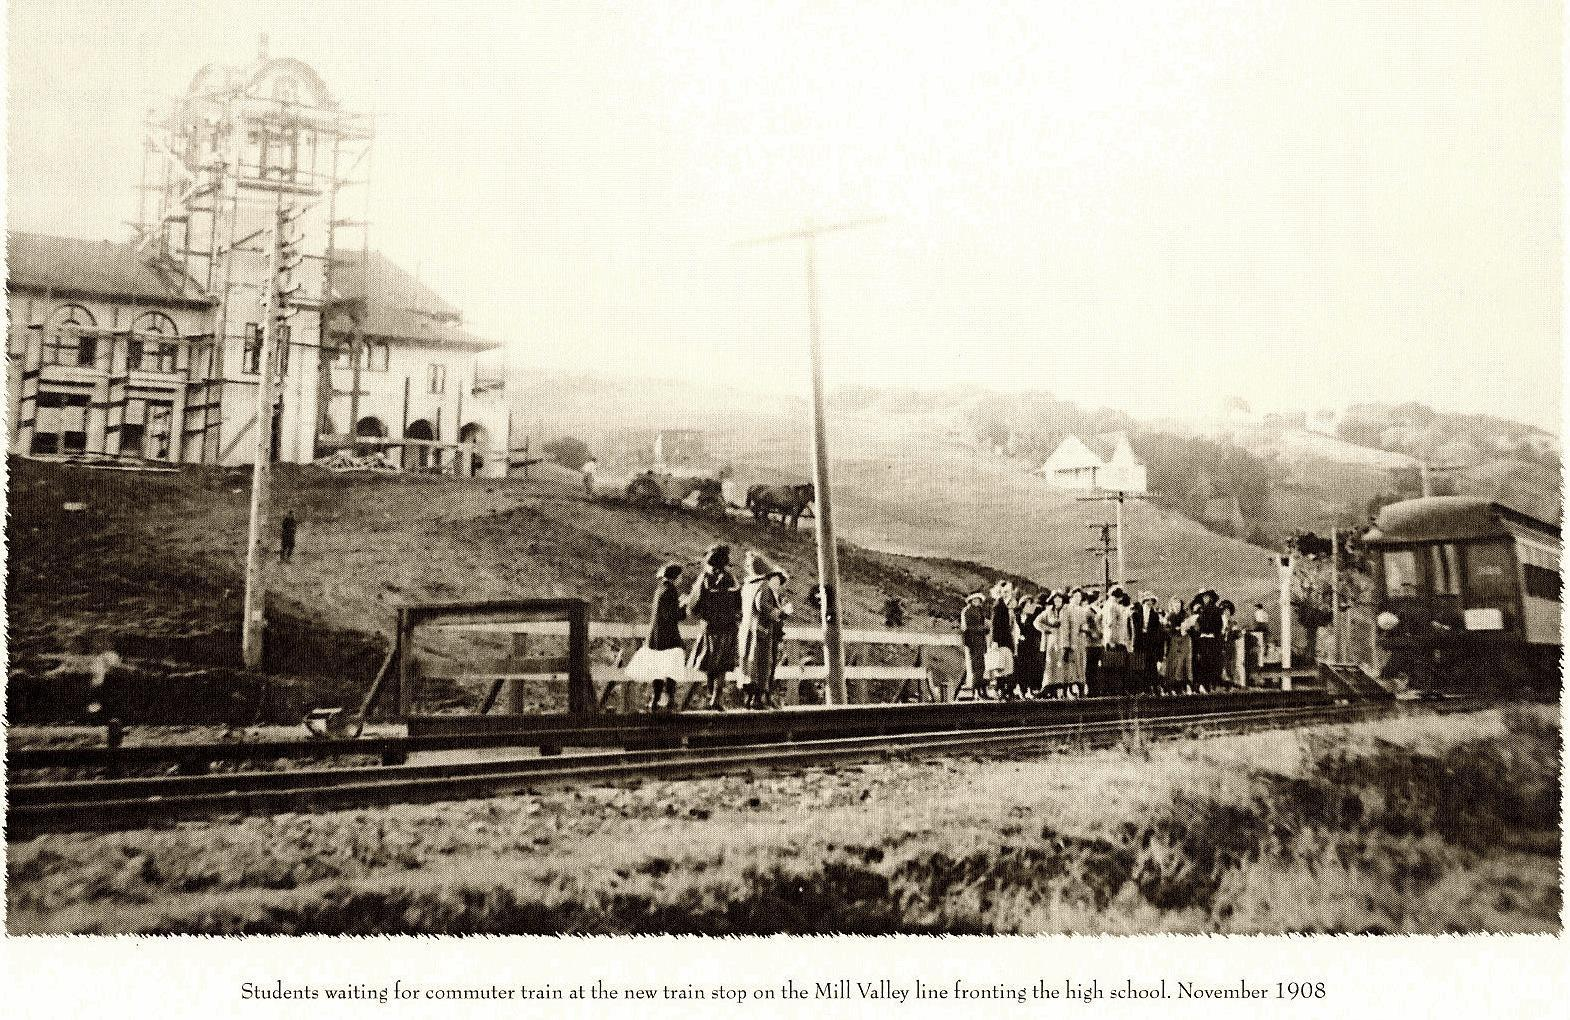 Train Stop November 1908 > click to enlarge